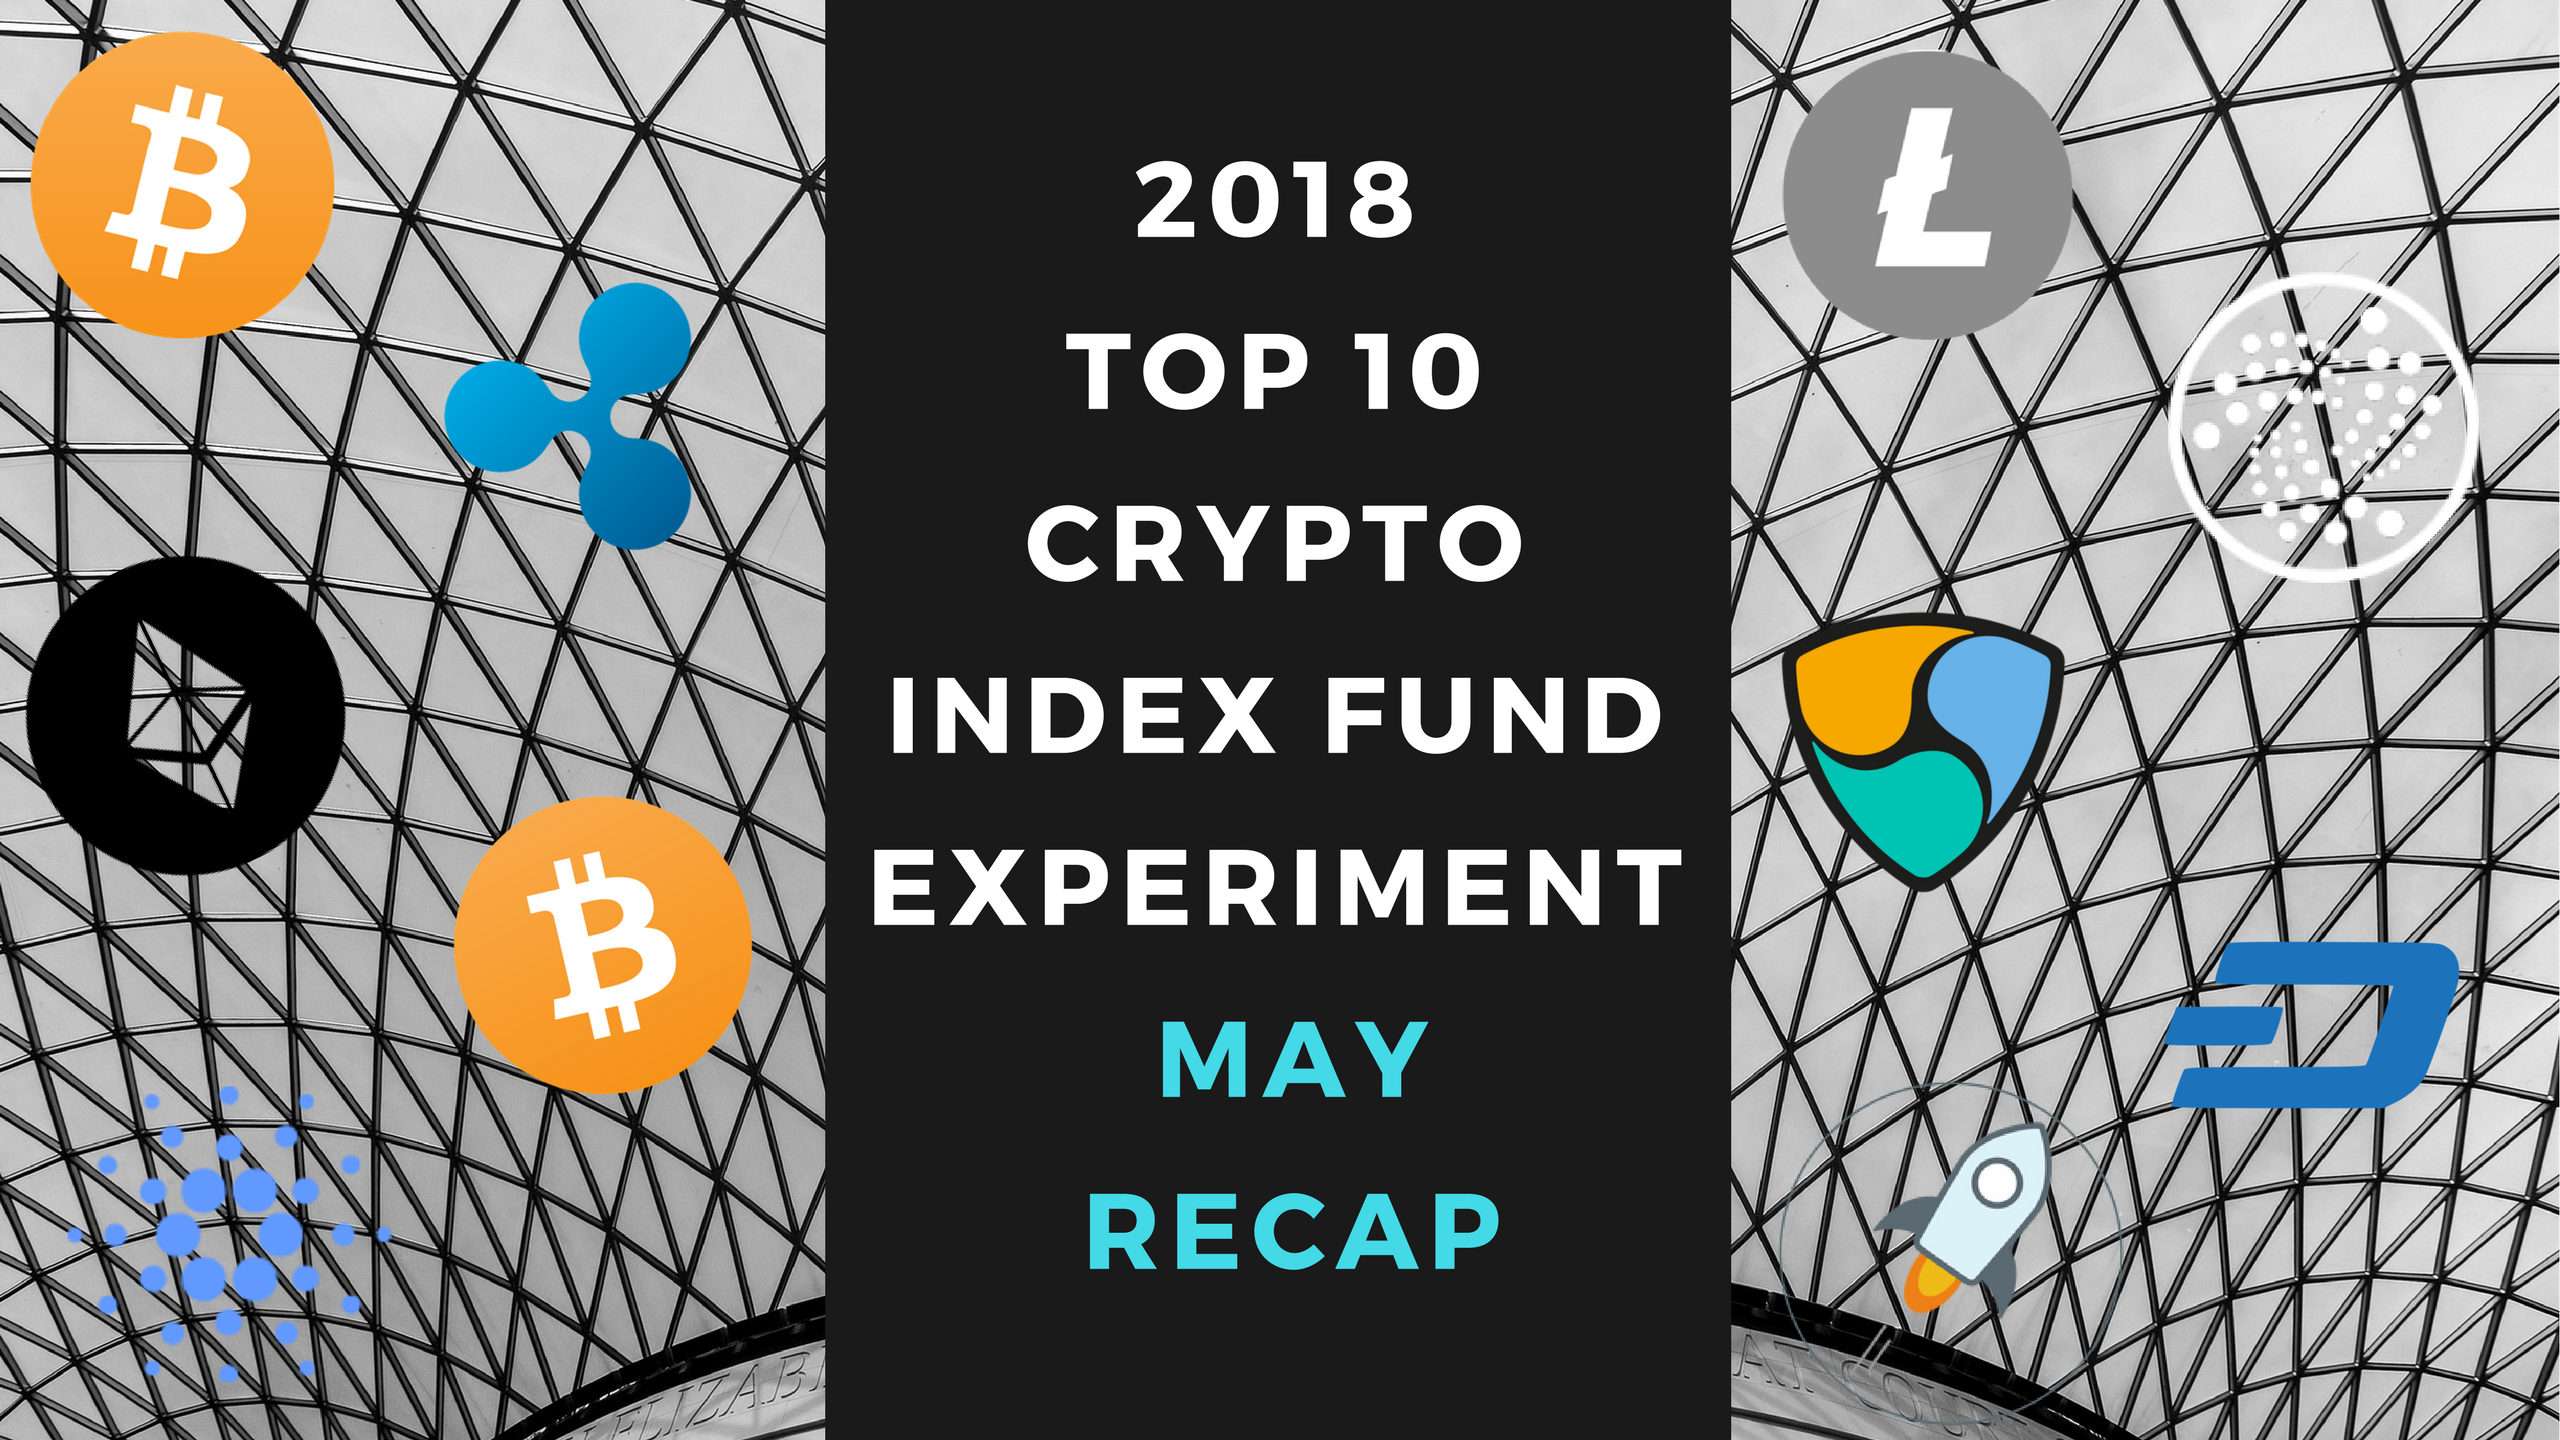 2018 Top 10 Crypto Index Fund Experiment MAY RECAP.png